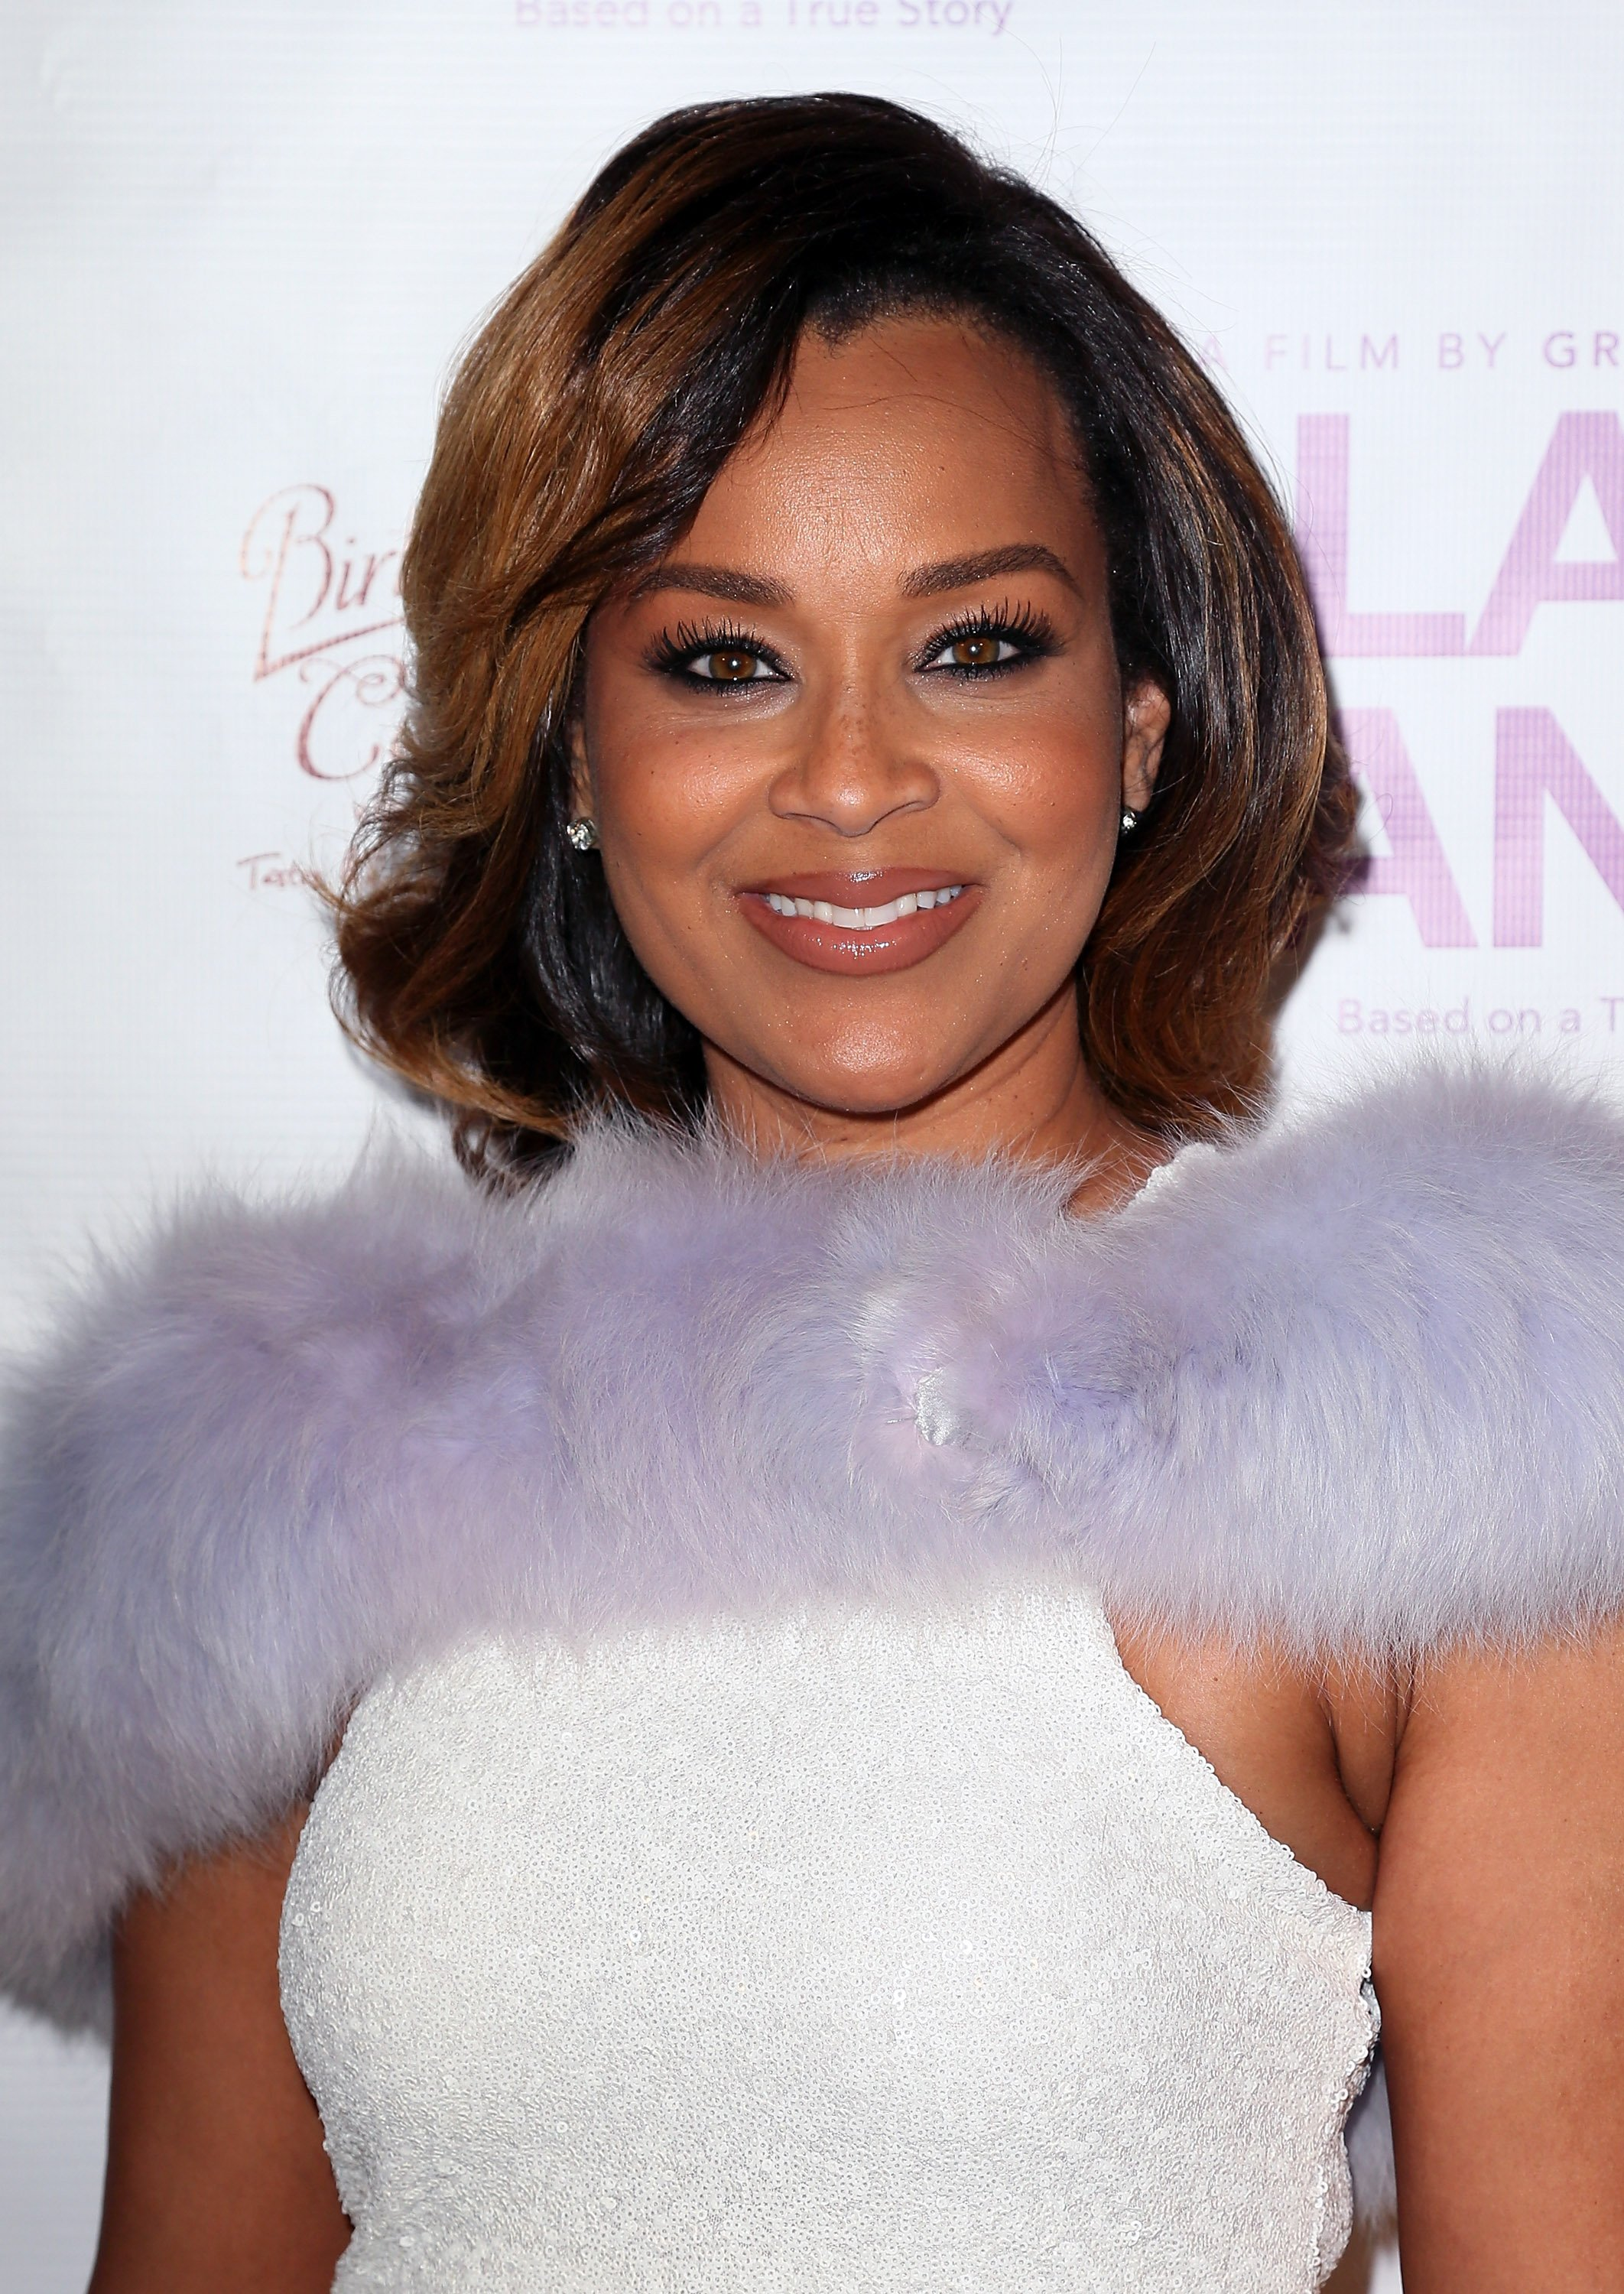 """LisaRaye McCoy at the premiere of """"Lap Dance"""" at ArcLight Cinemas on December 8, 2014 in Hollywood, California.